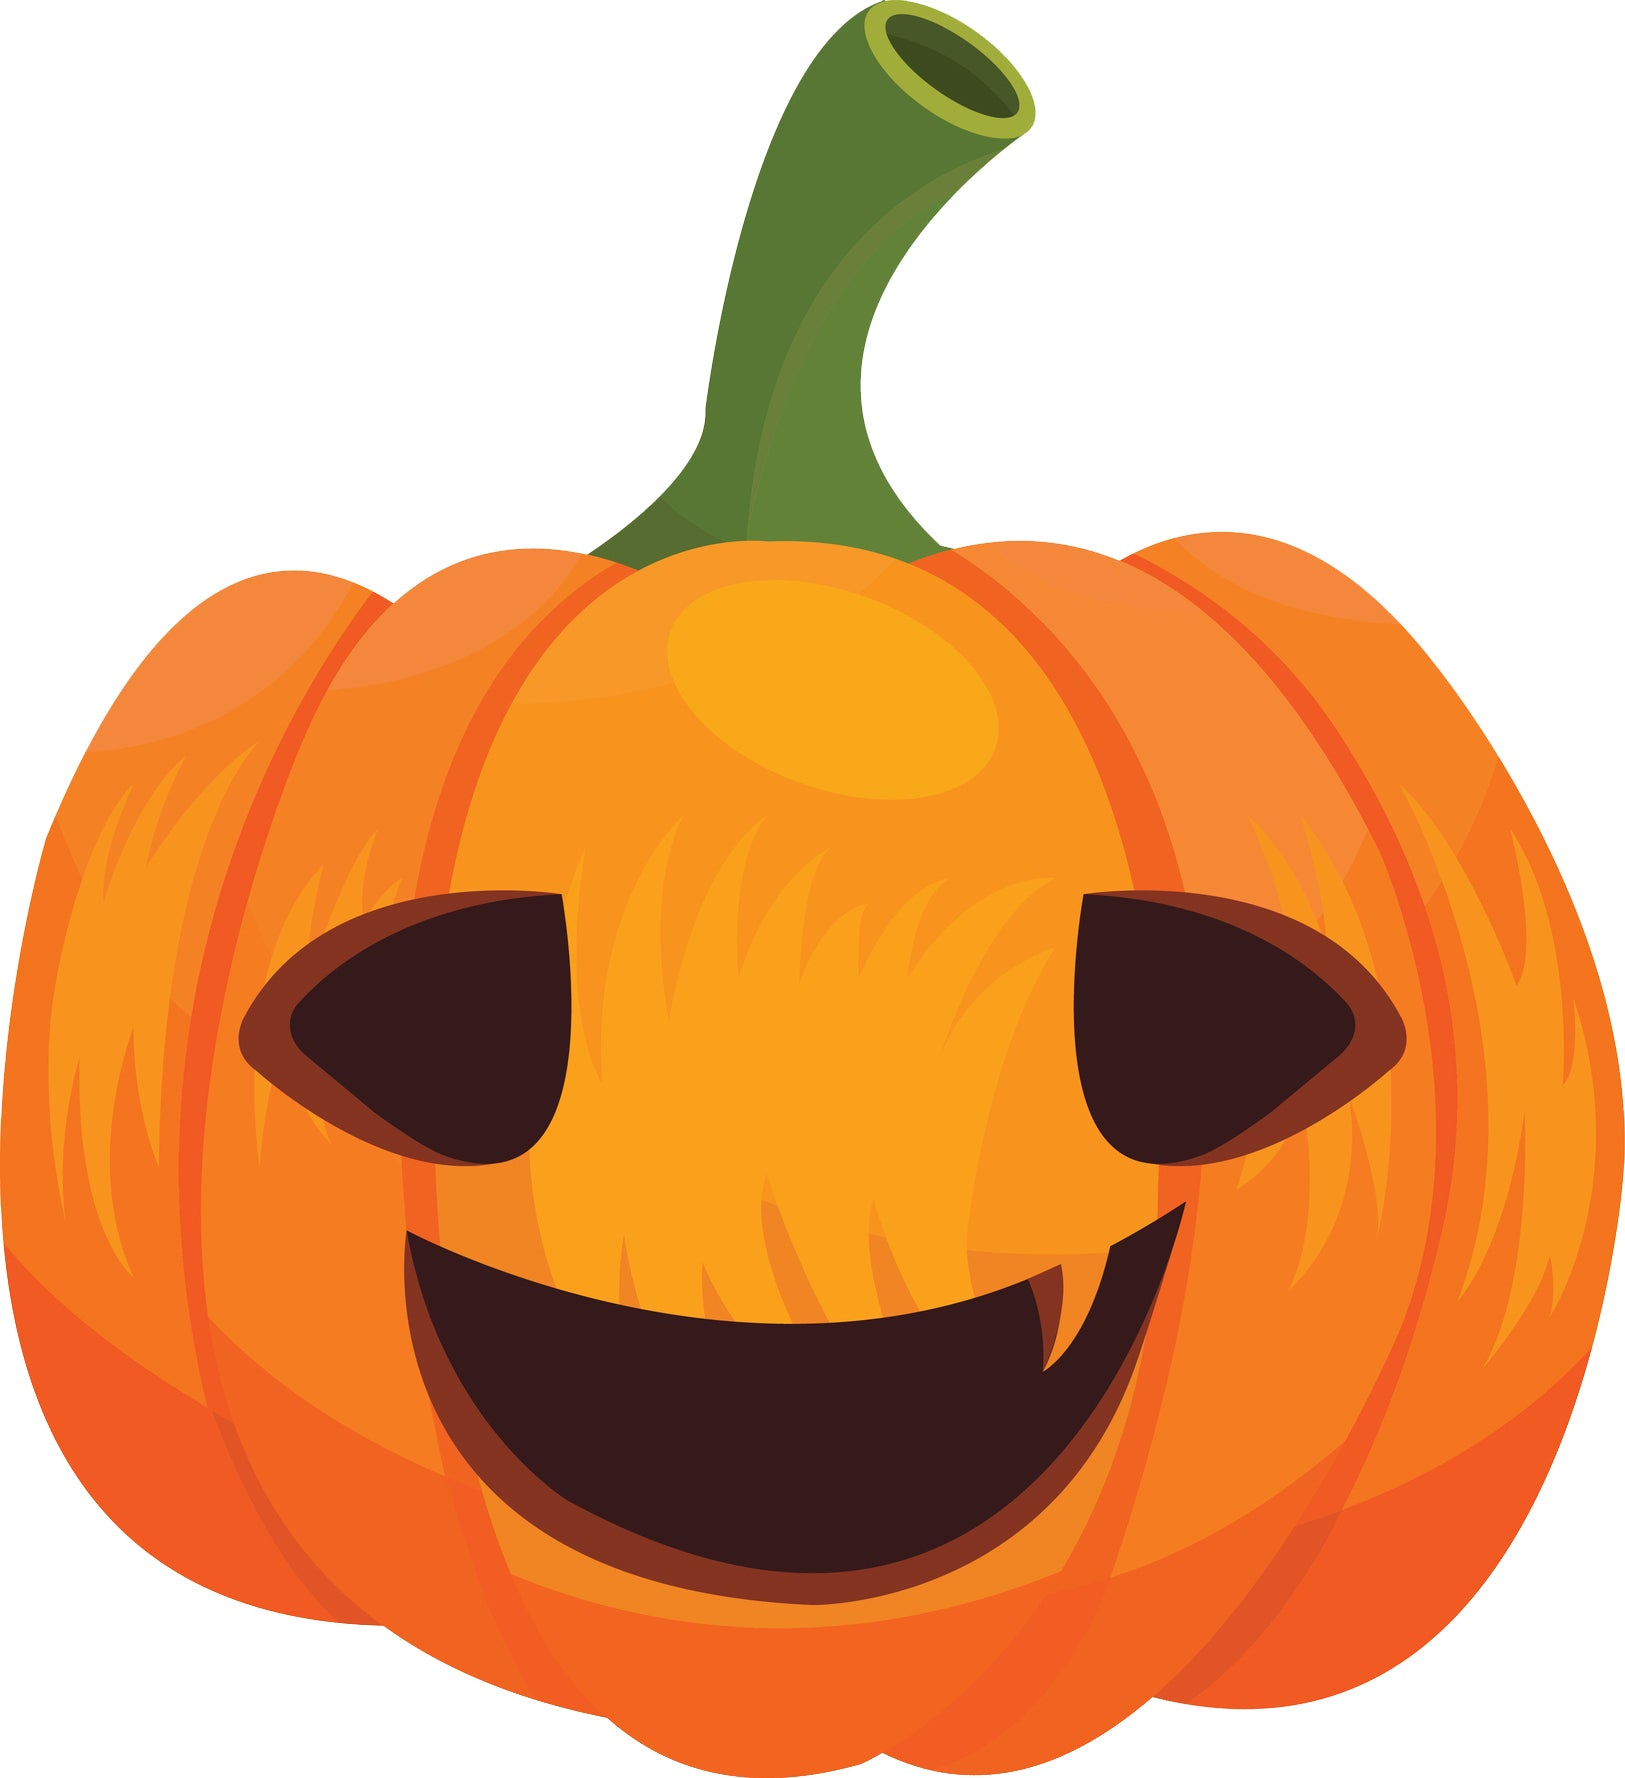 Cute Halloween Cartoon Pen Art - Pumpkin Jack O Lantern Vinyl Decal Sticker